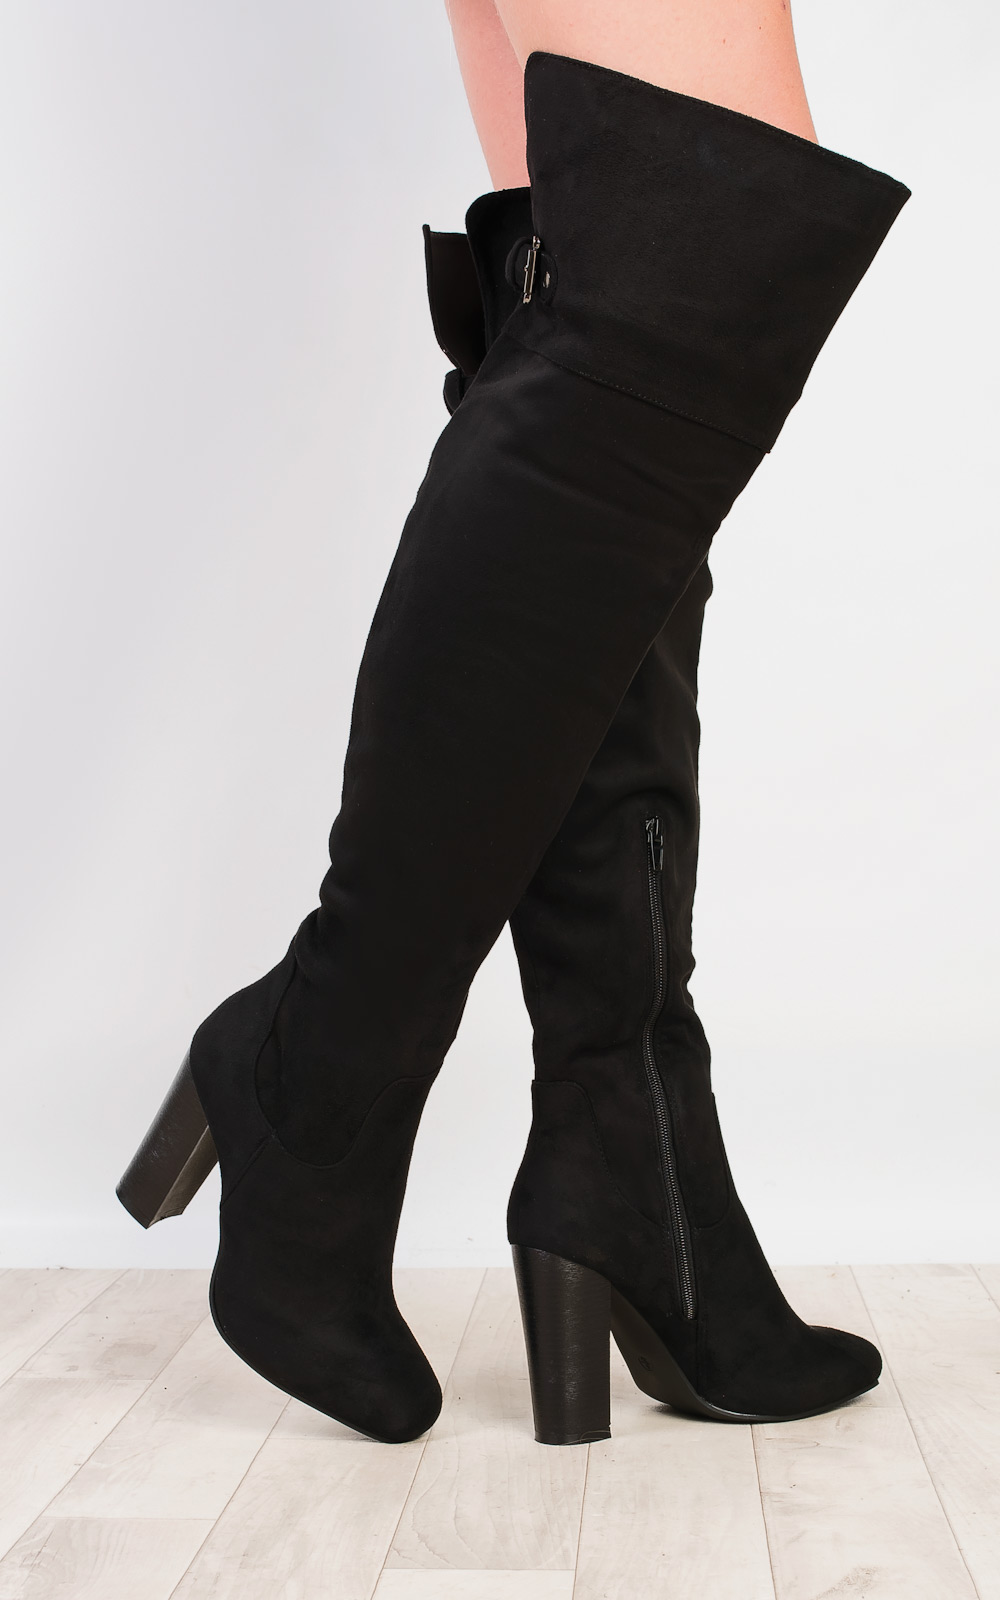 Women039s Ladies Stunning Knee High Faux Suede Glam Boots - <span itemprop=availableAtOrFrom>Glasgow, United Kingdom</span> - If you change your mind about a product or find the size isn't quite right, you can return it to us. We are happy to accept returns that are received within 30 days of delivery for full p - Glasgow, United Kingdom